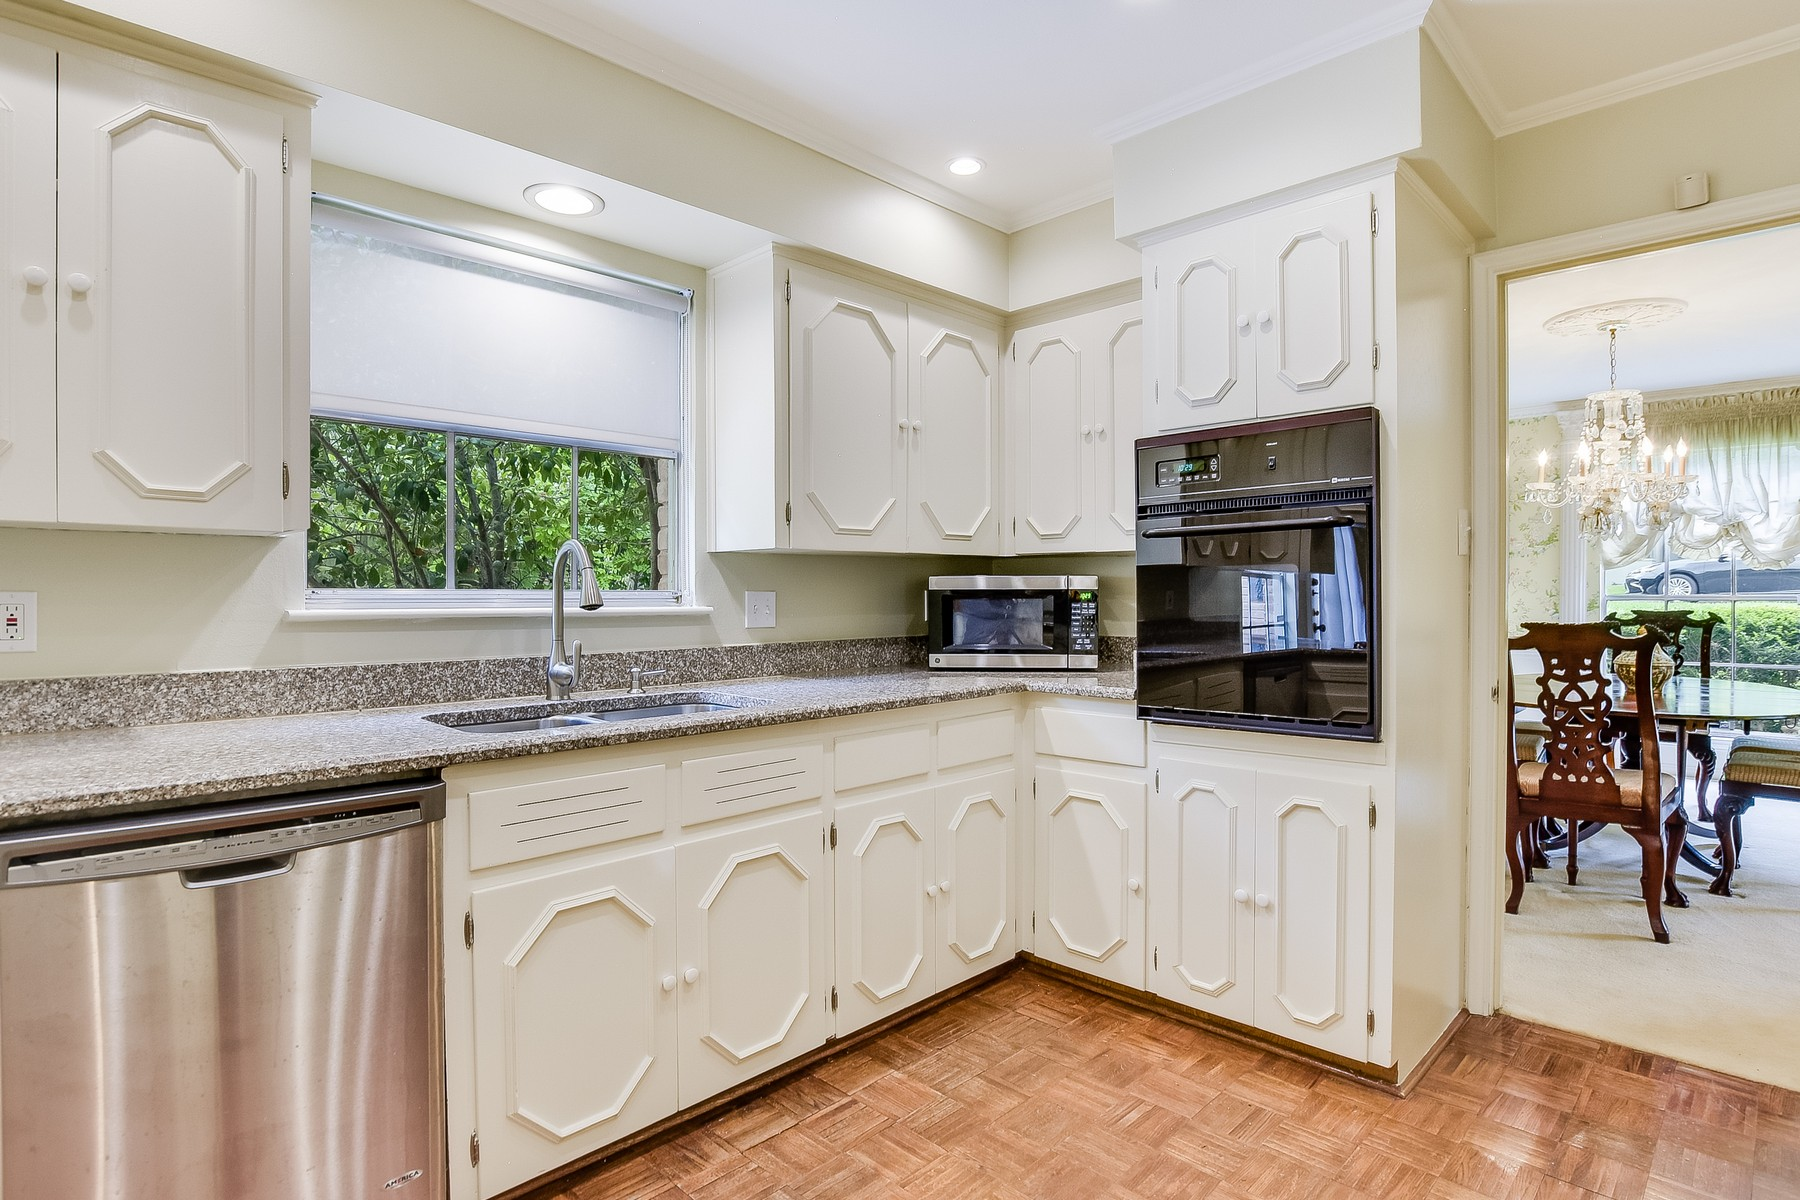 Additional photo for property listing at Walk to Tarrytown Boat Club! 3505 River Rd Austin, Texas 78703 United States